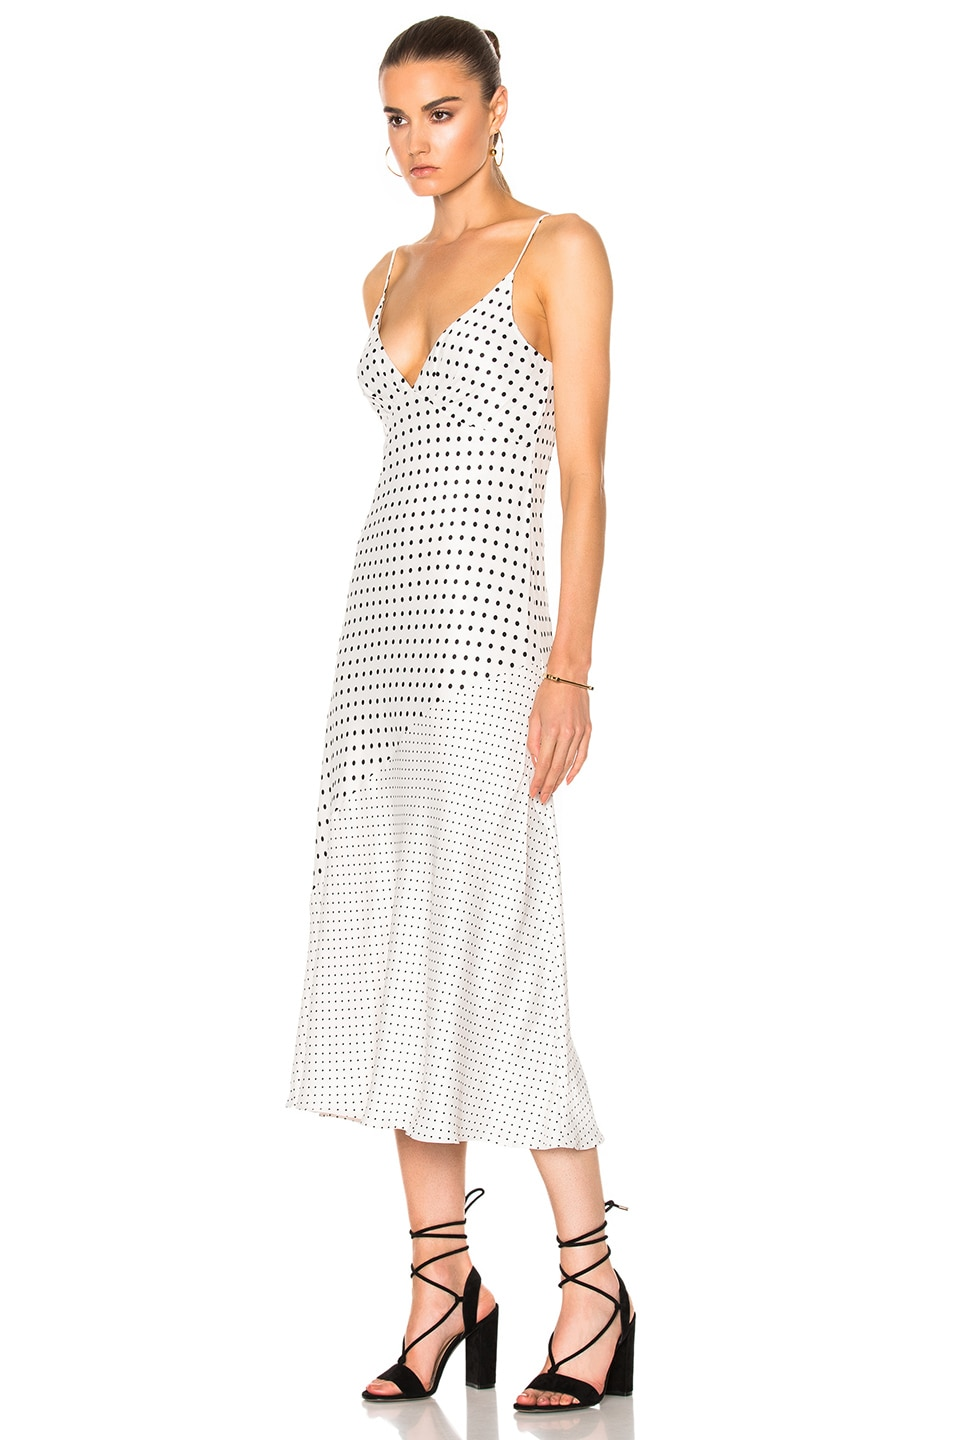 a3056fb623a9 Image 2 of Zimmermann Stranded Tuck Slip Dress in Pearl Dot